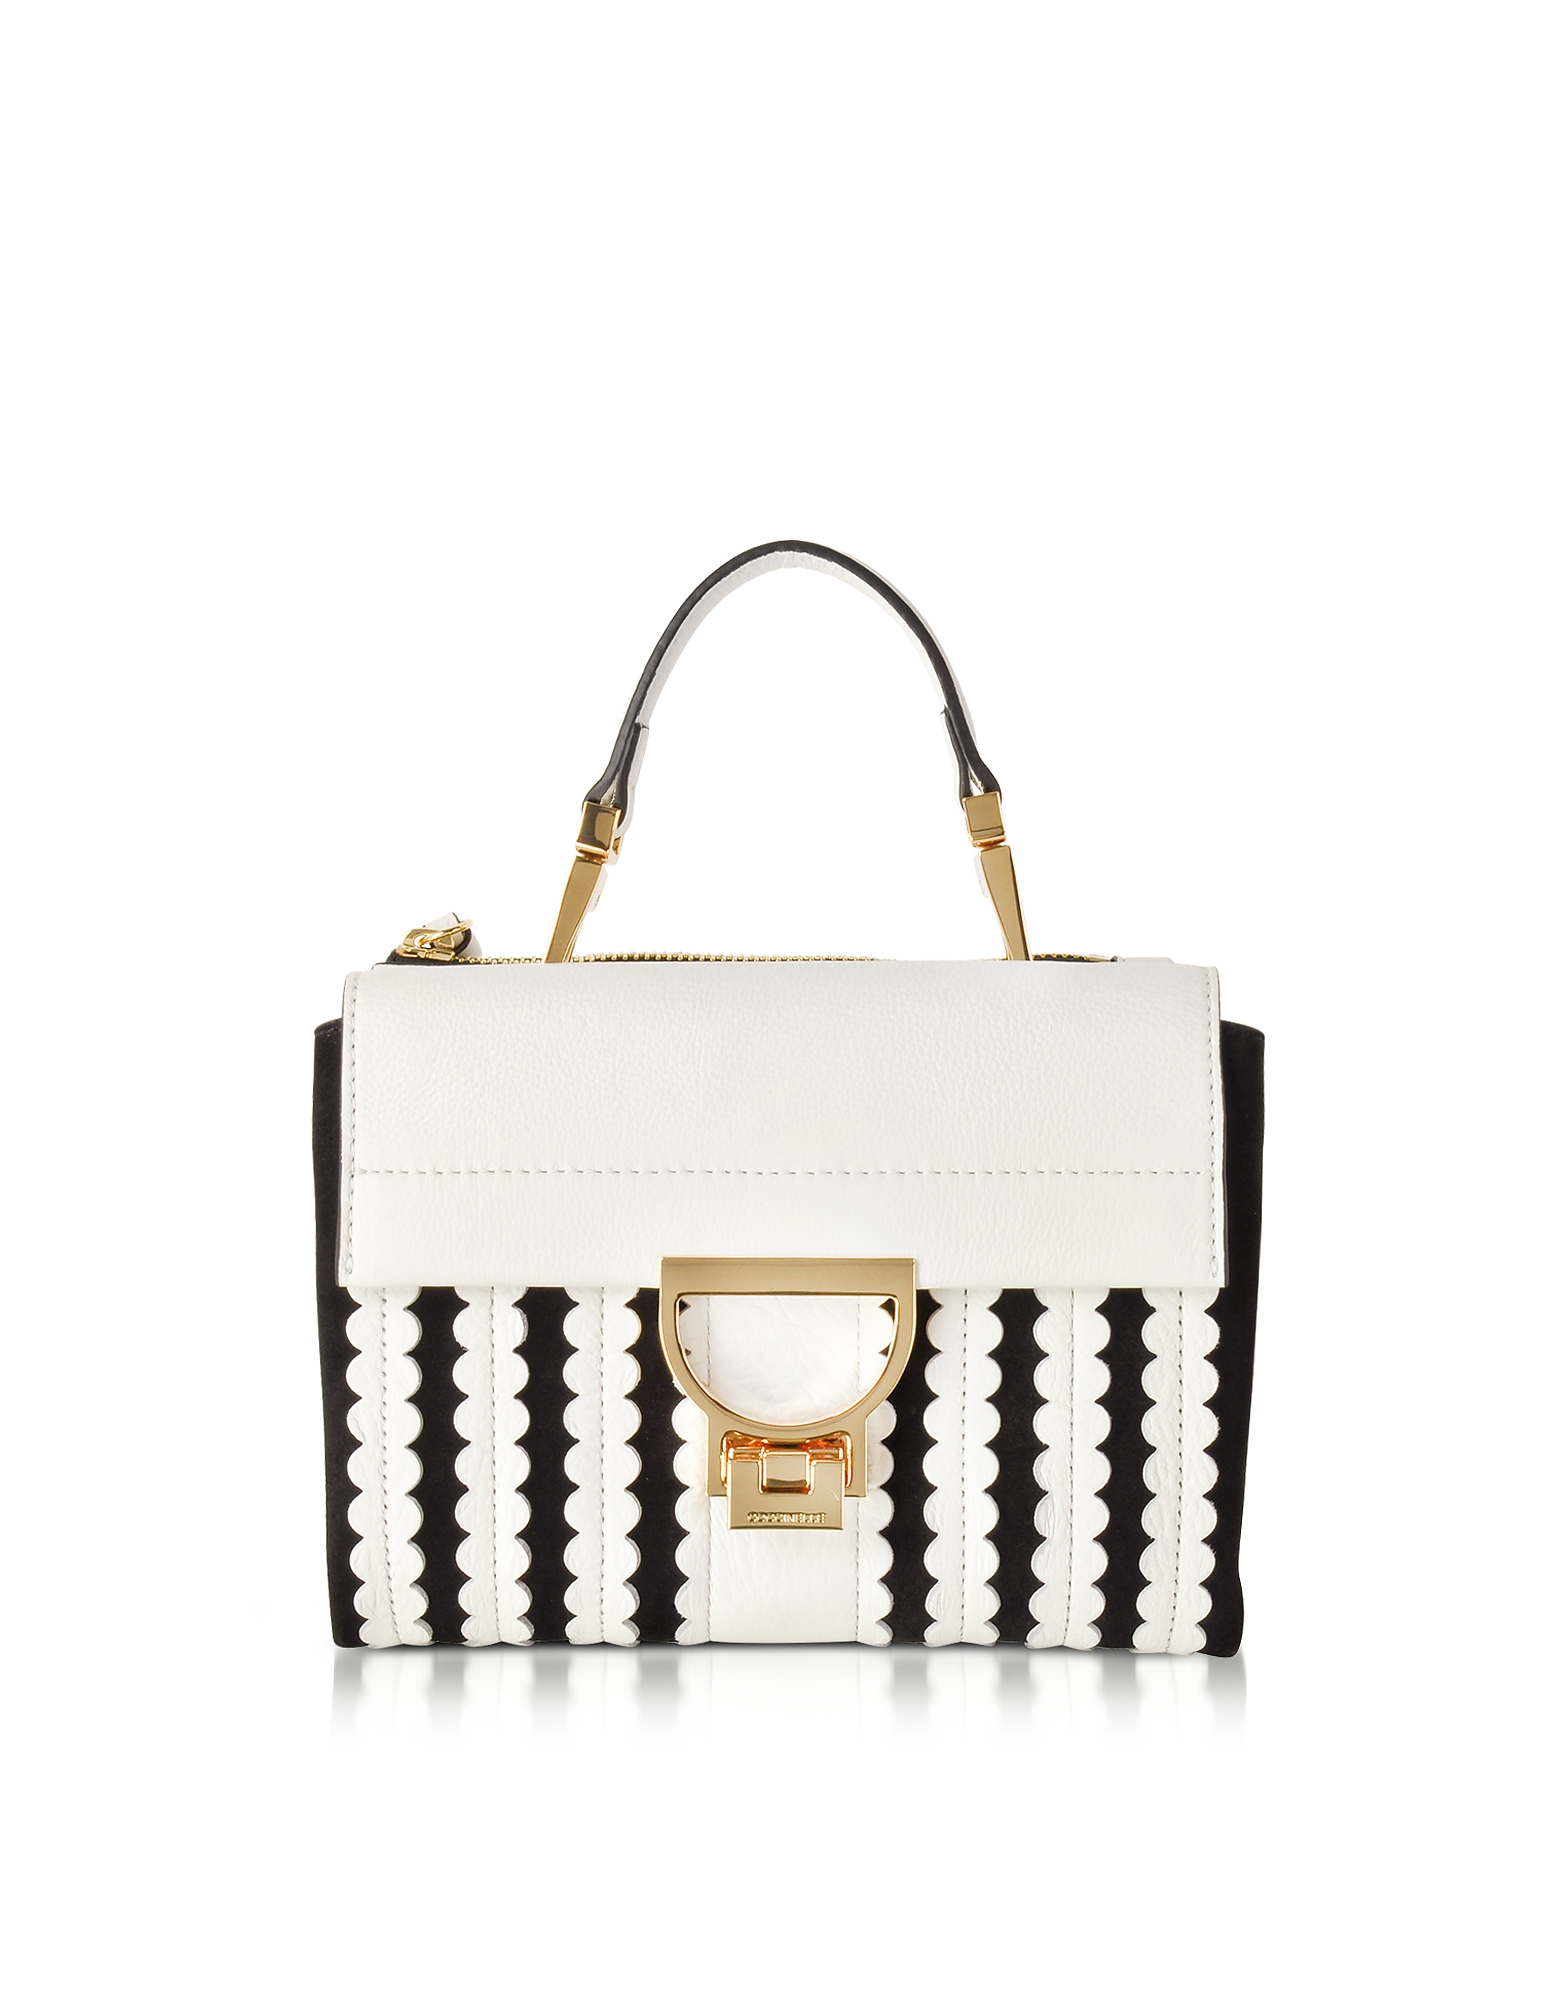 Coccinelle Handbags, Arlettis Merletto White Pebbled Leather and Black Suede Mini Bag w/Shoulder Str